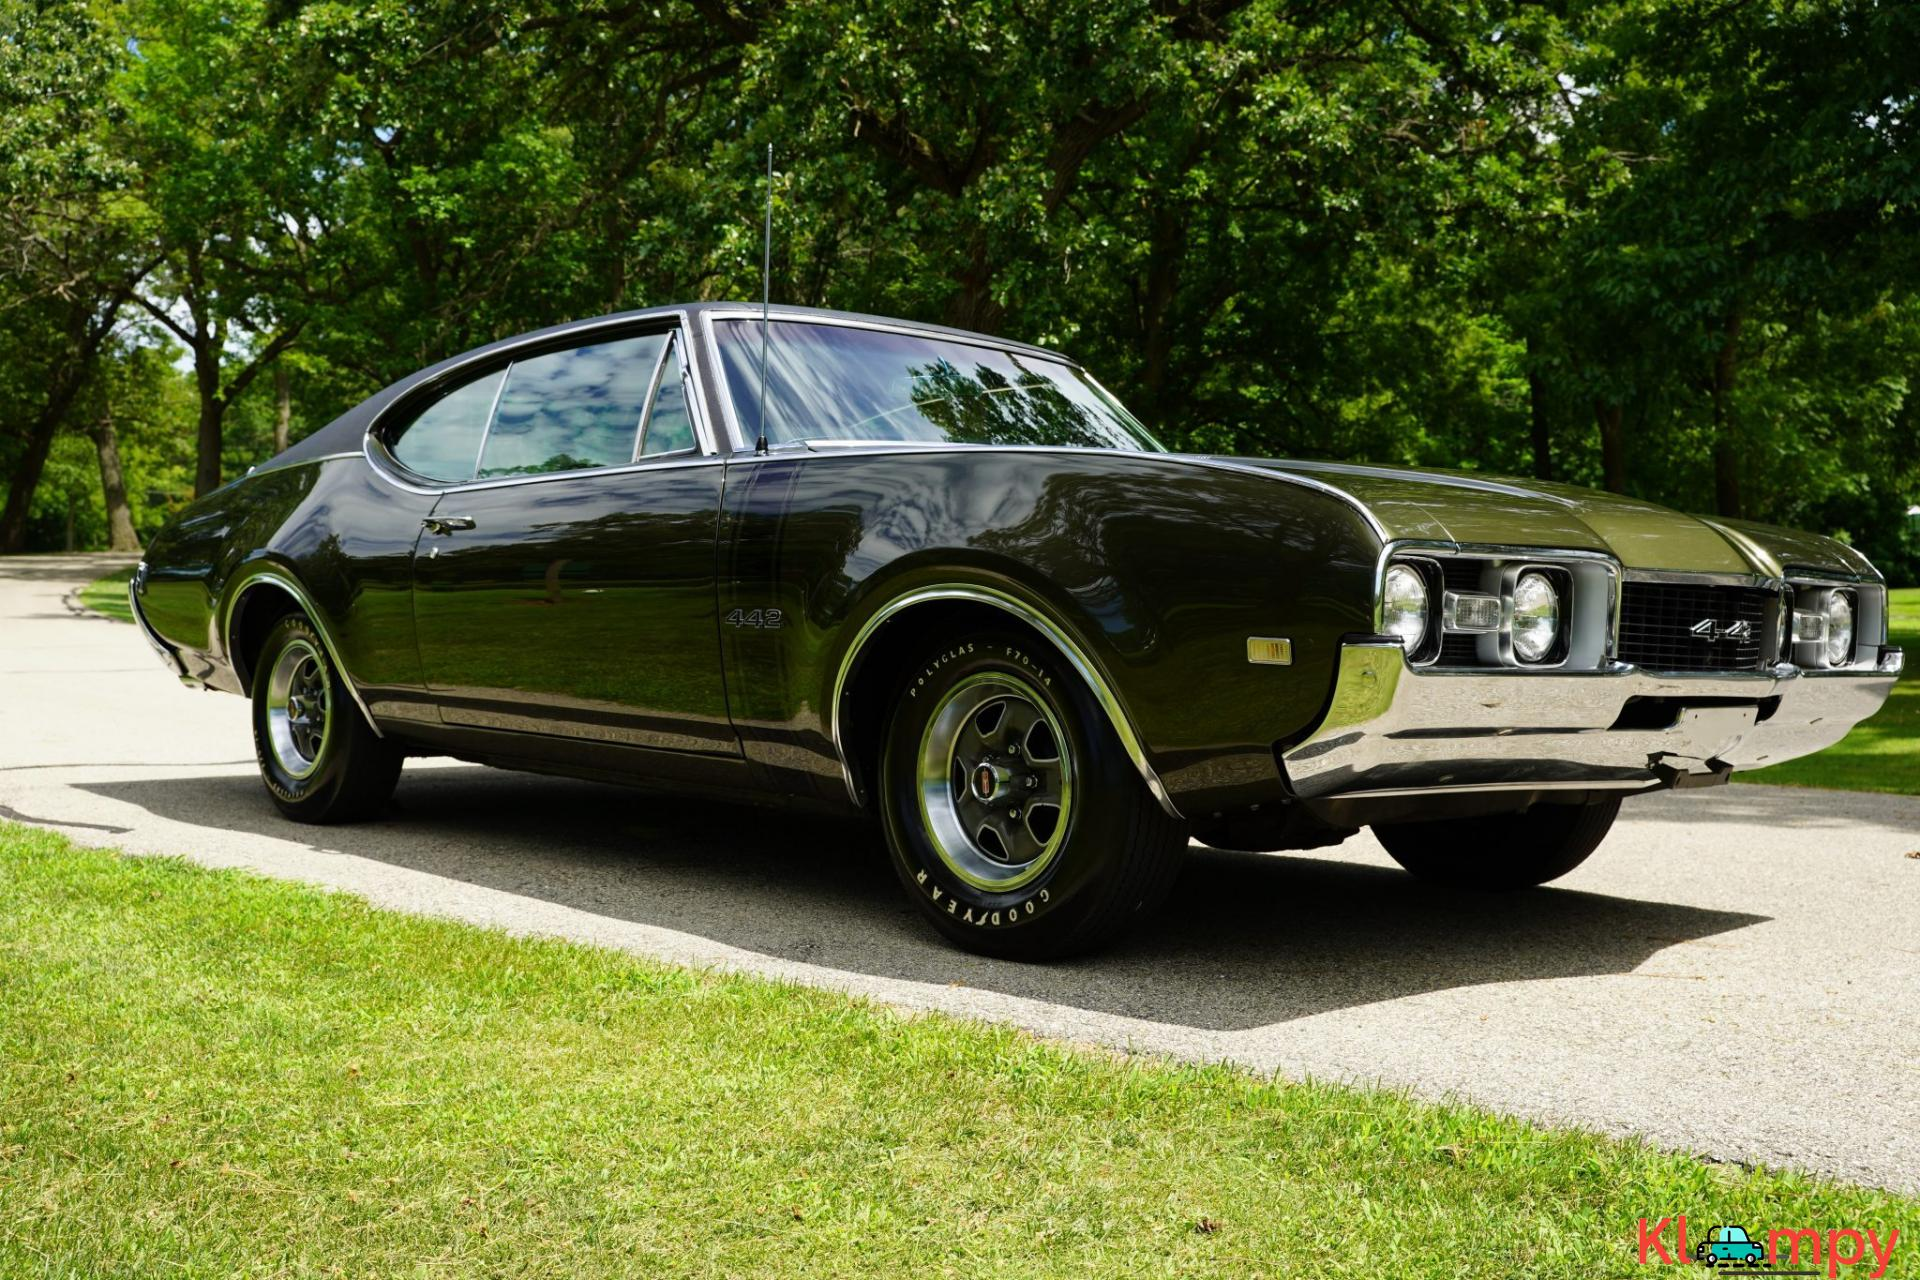 1968 Oldsmobile 442 Holiday Coupe Jade Gold - 3/28